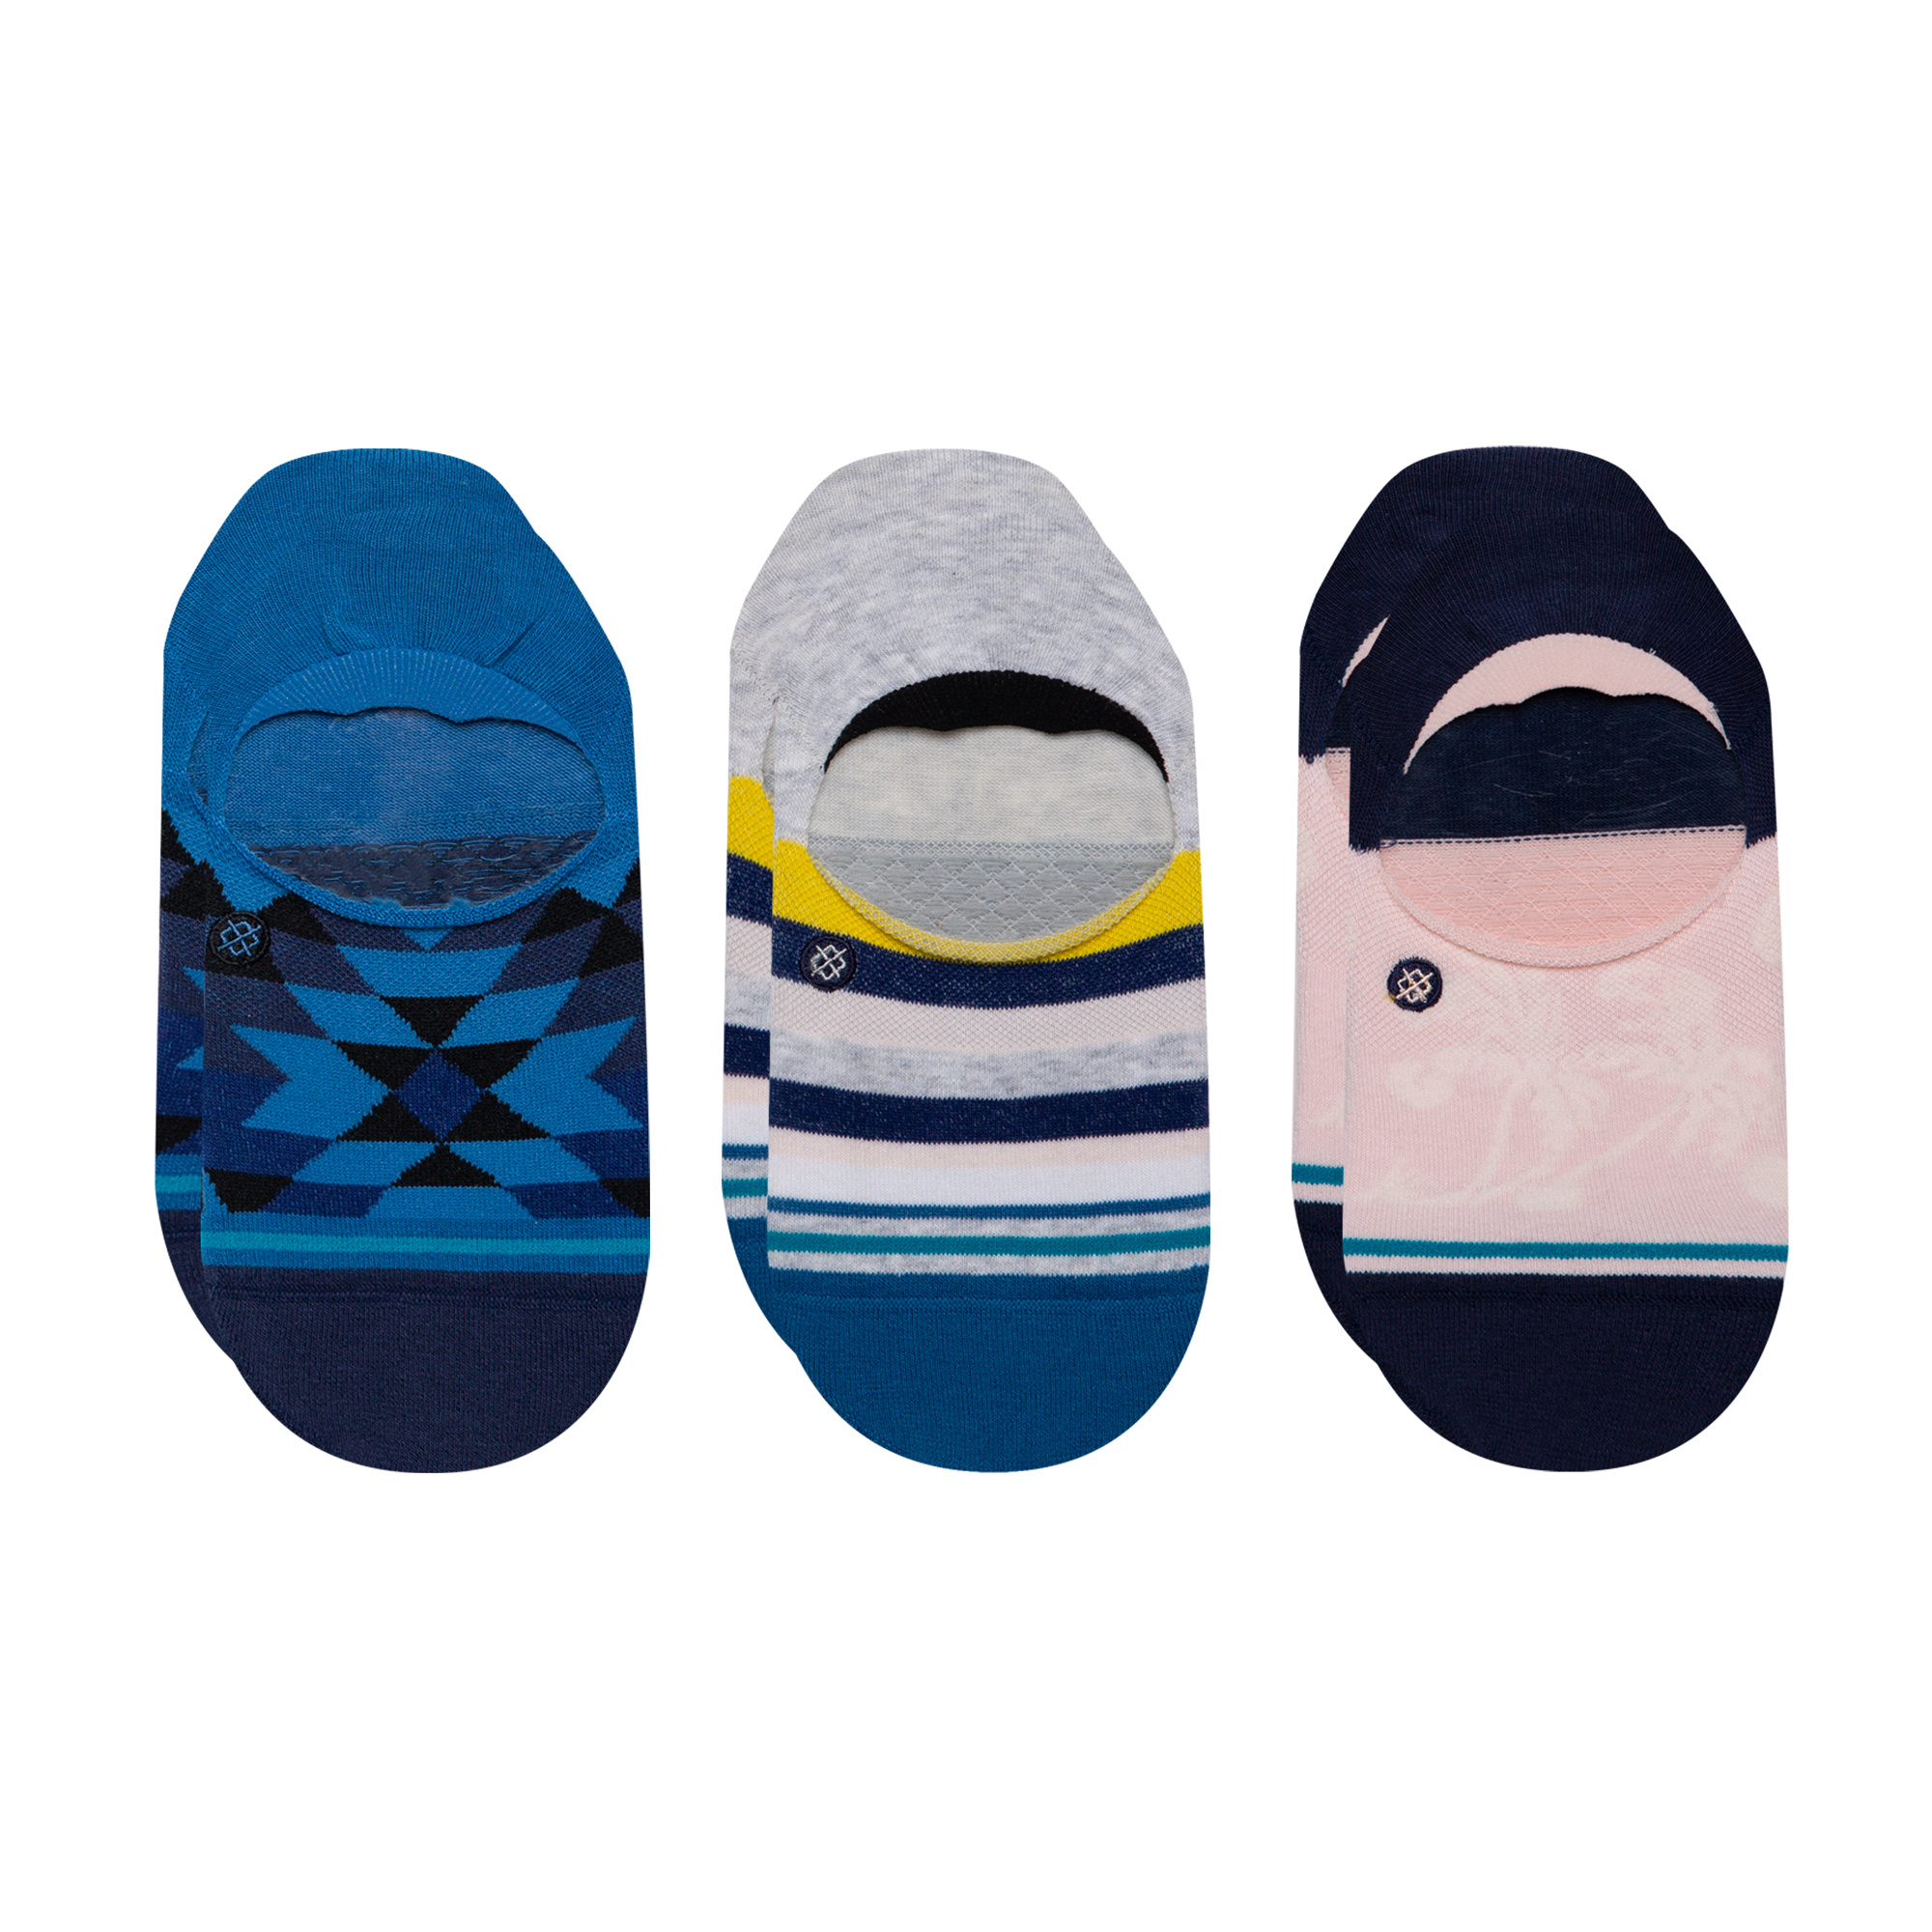 AVALON 3 PACK WOMENS-1